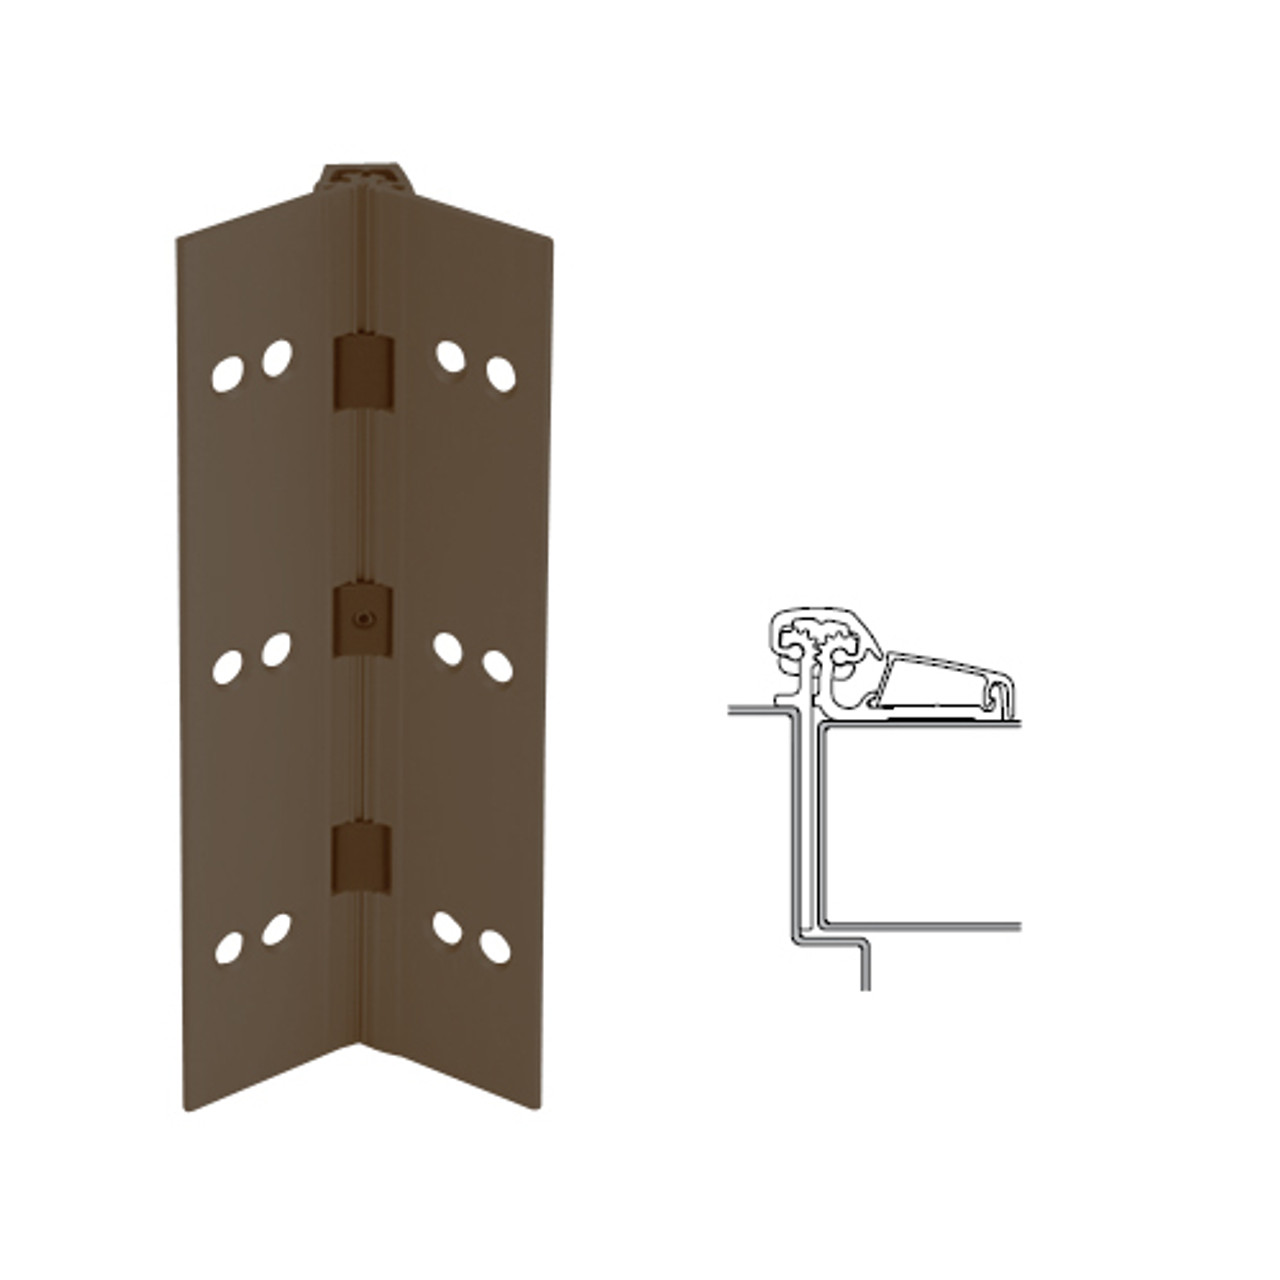 054XY-313AN-95-TFWD IVES Adjustable Half Surface Continuous Geared Hinges with Thread Forming Screws in Dark Bronze Anodized